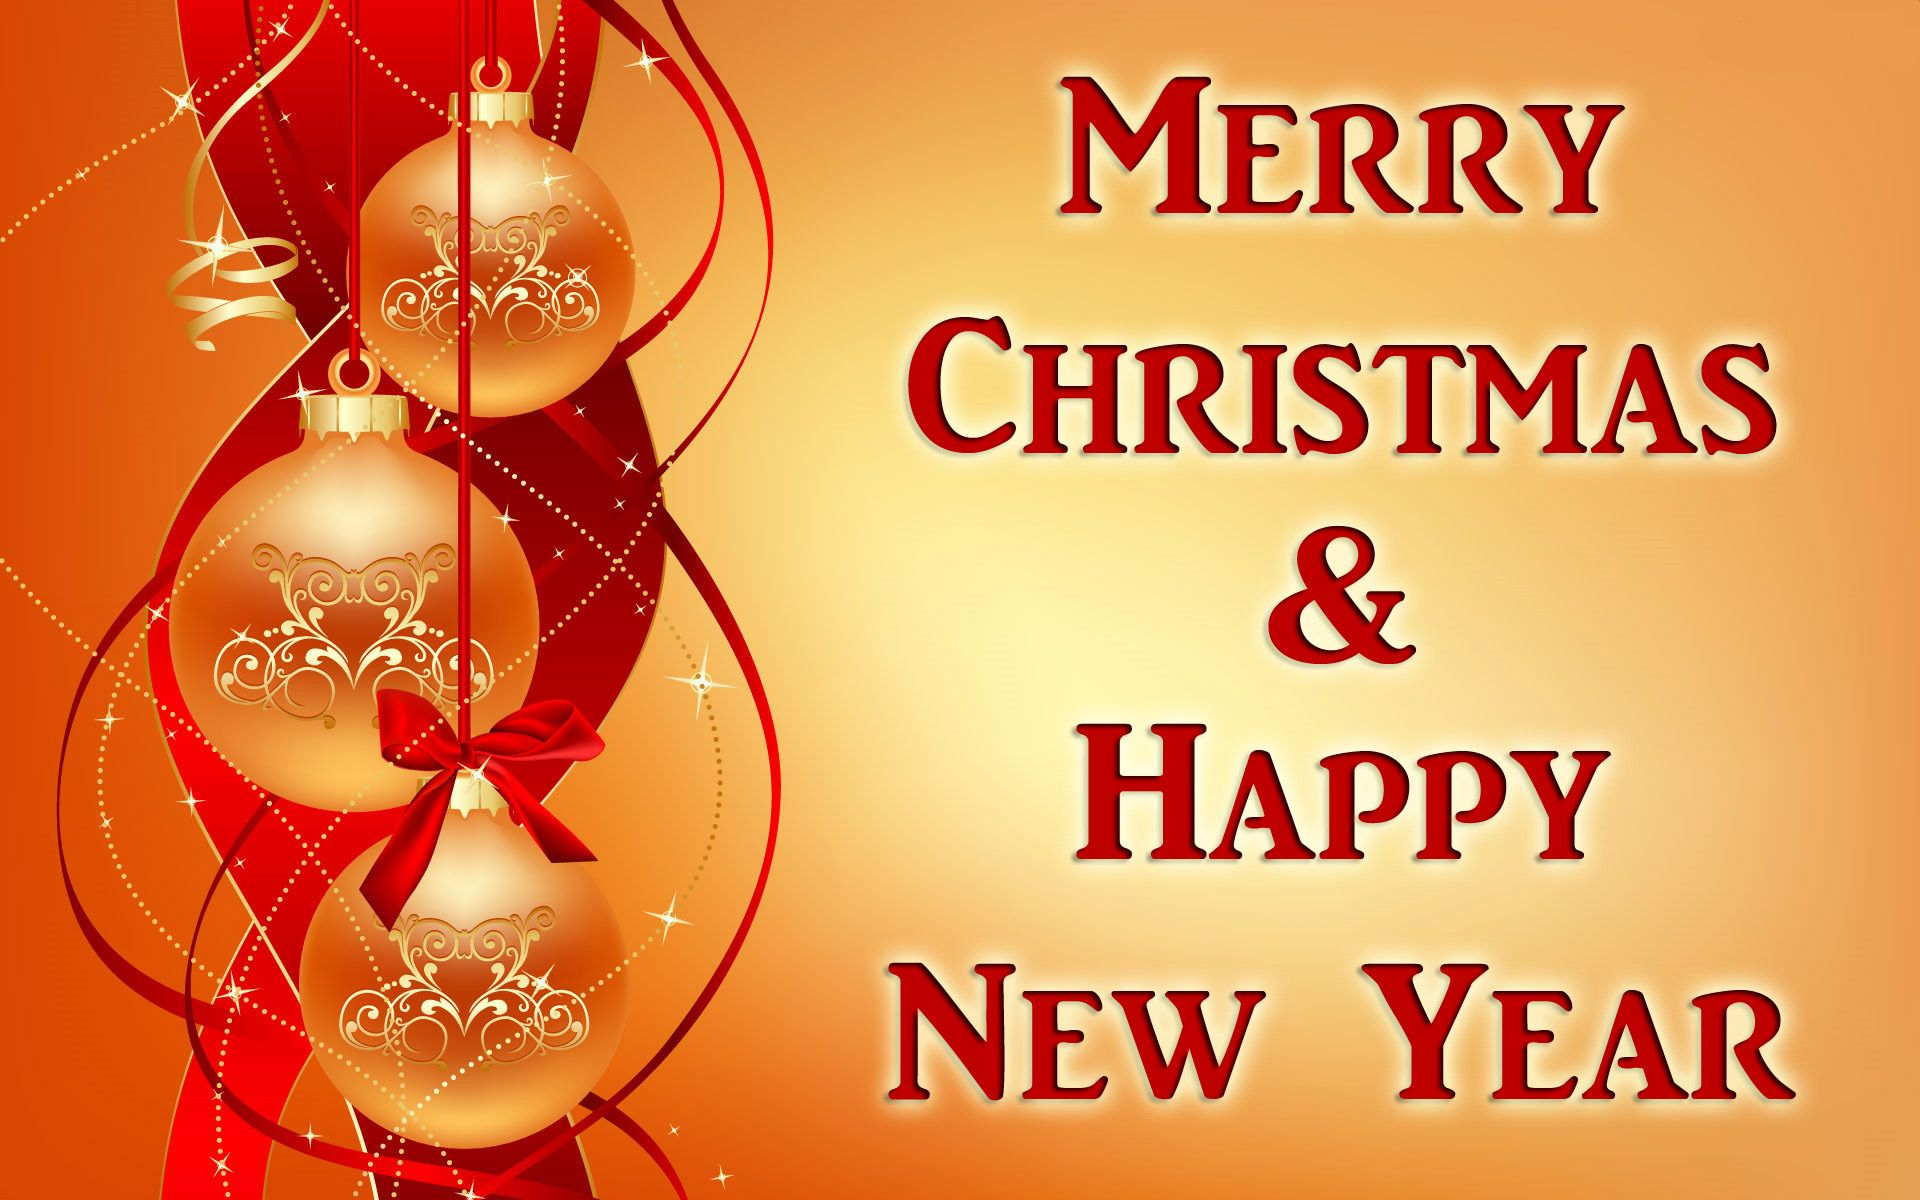 Christmas n new year greetings card happy new year 2015 christmas n new year greetings card m4hsunfo Images